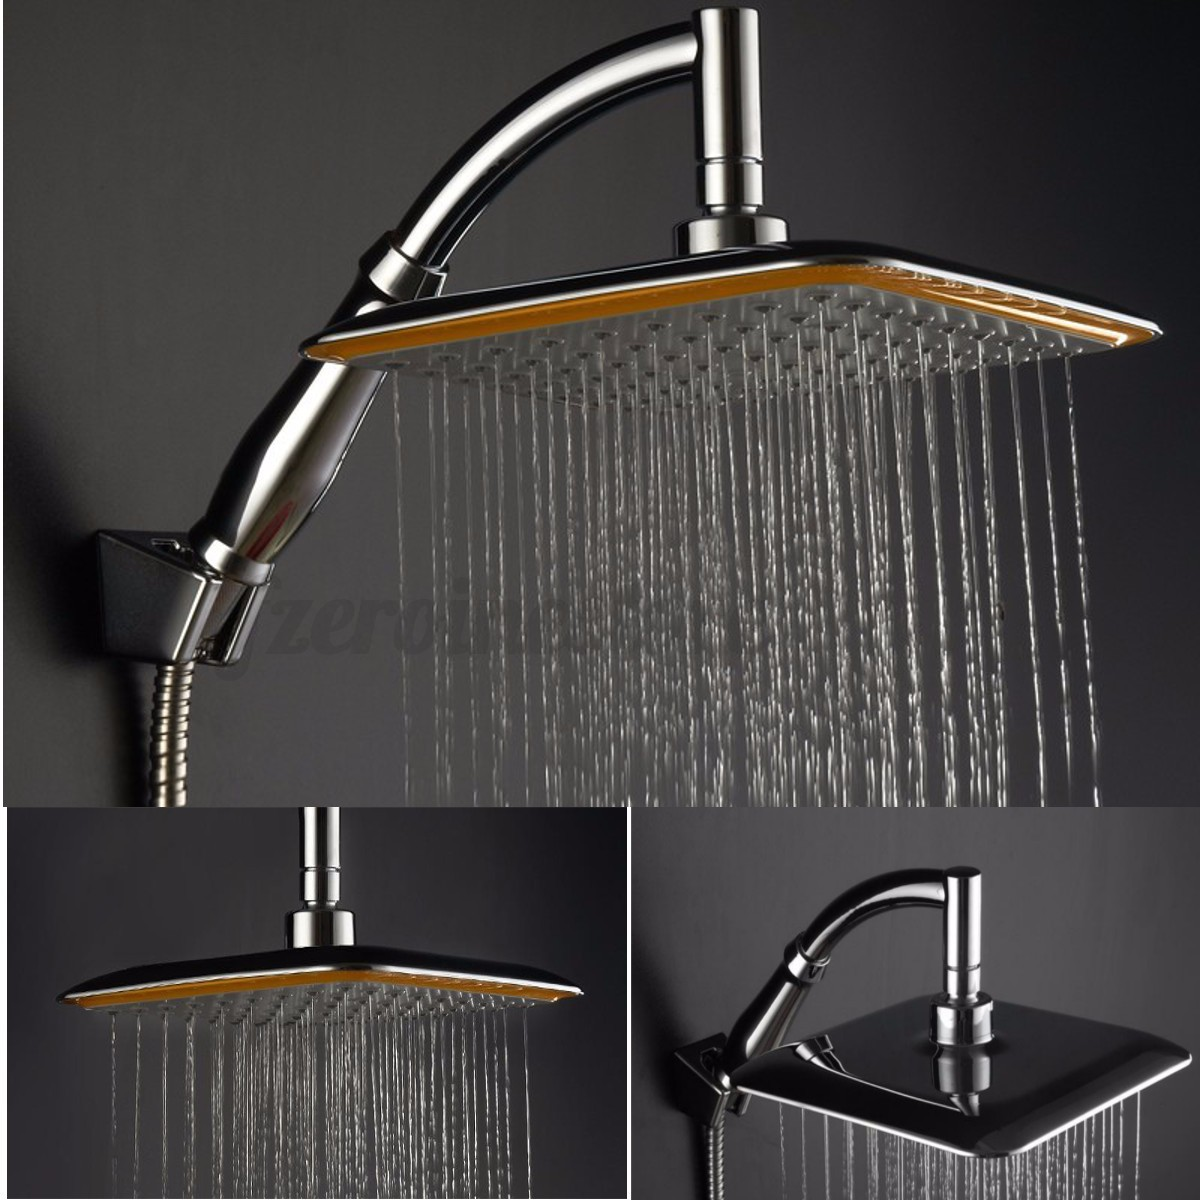 abs rainfall shower head faucet extension shower arm chrome with extension pipe ebay. Black Bedroom Furniture Sets. Home Design Ideas